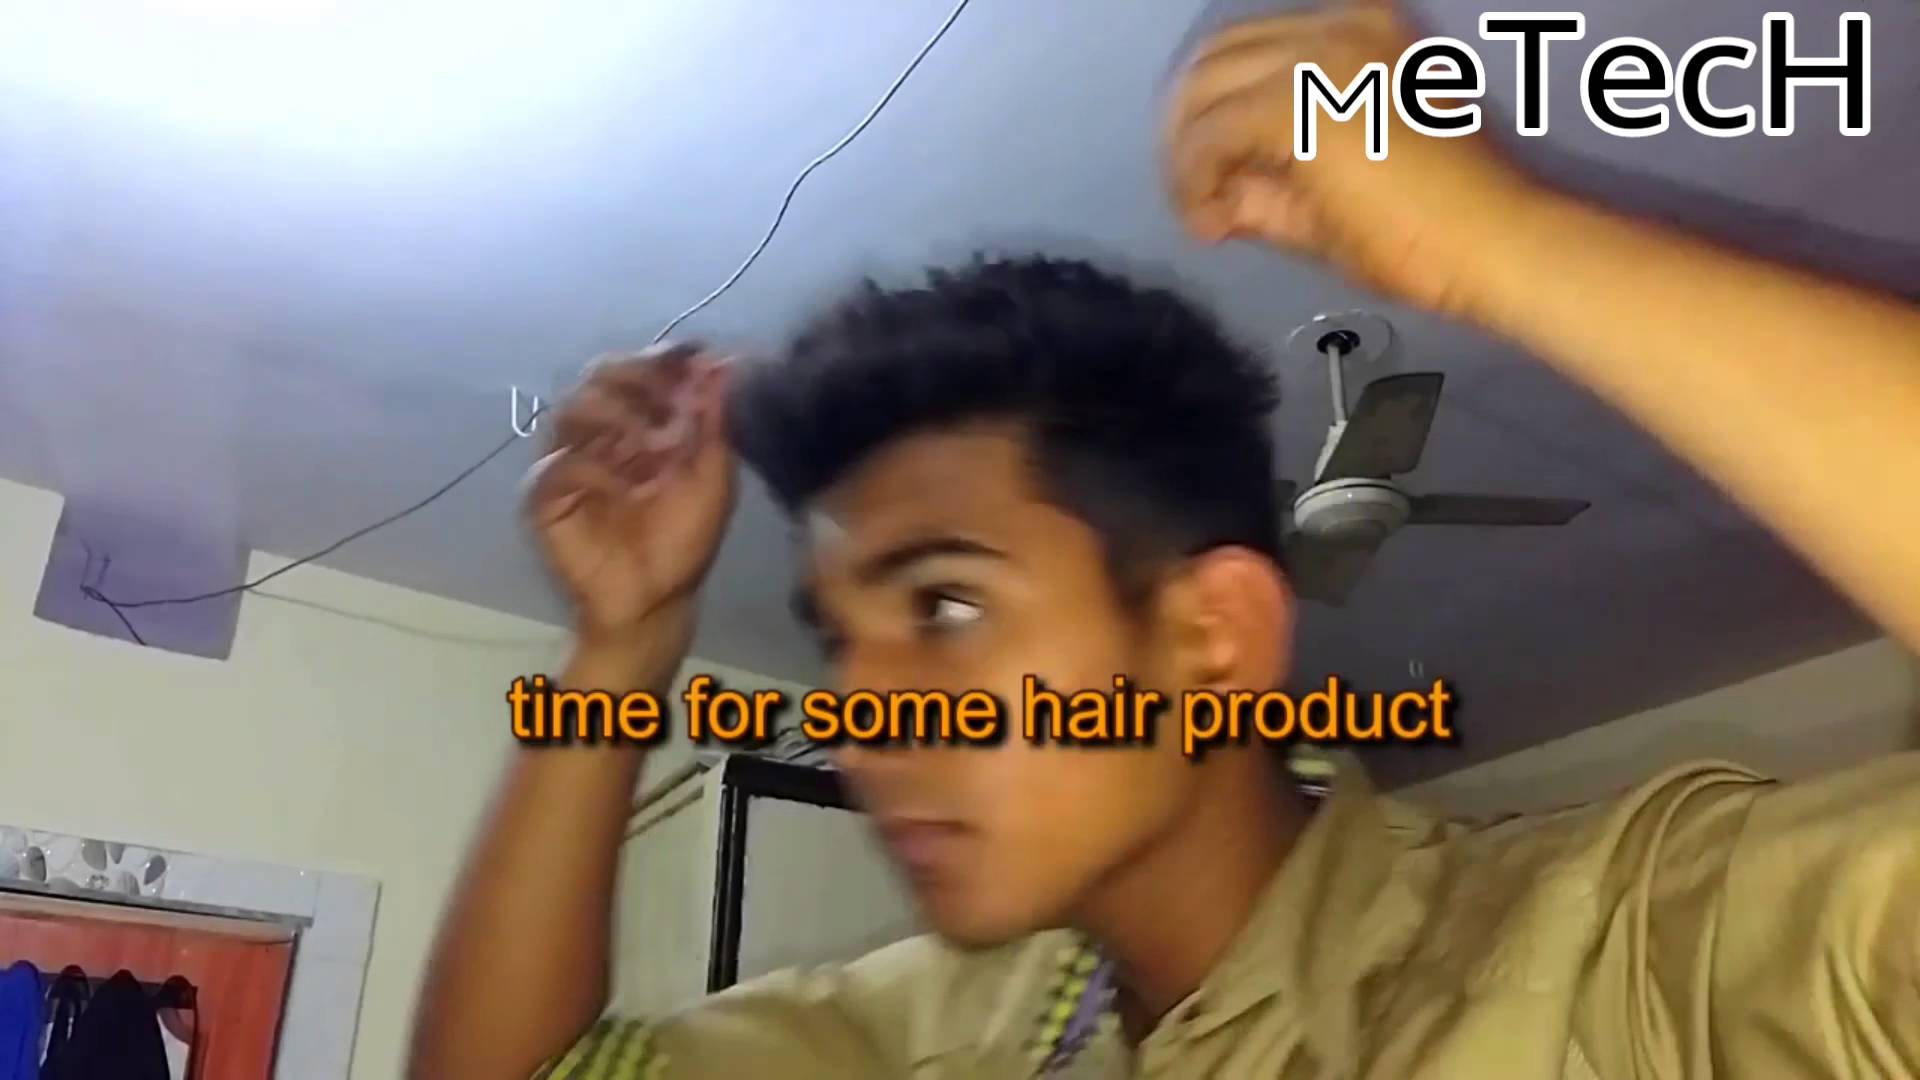 Hairstyles-for-indian-men-new-haircut-quick-video